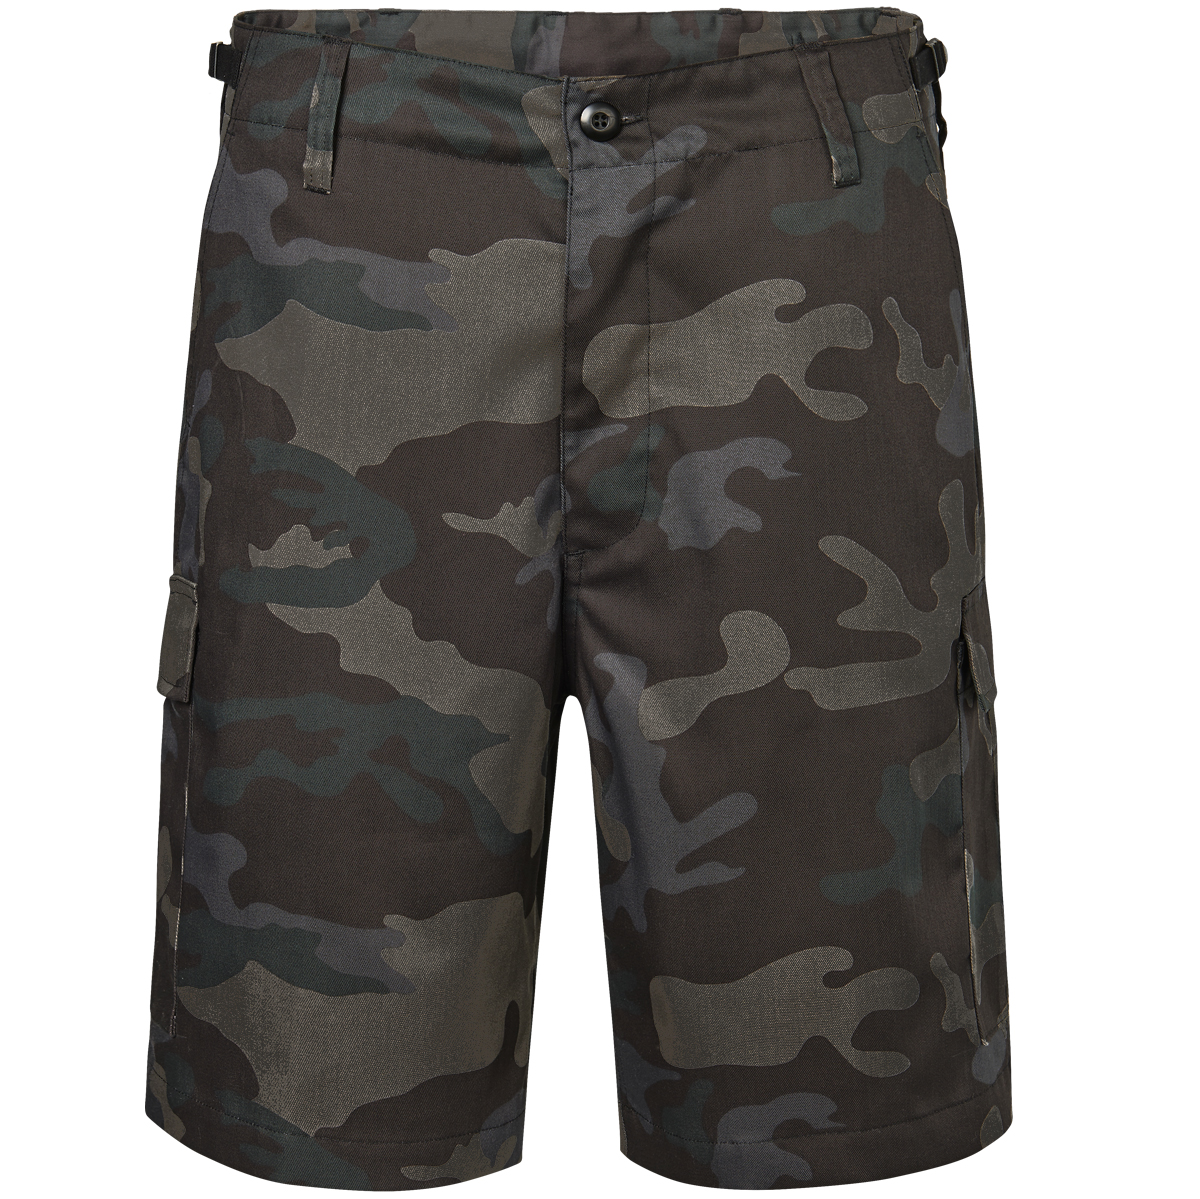 8280ffbc5f16 Brandit Combat Shorts Bermuda Tactical Airsoft Summer Mens Short ...